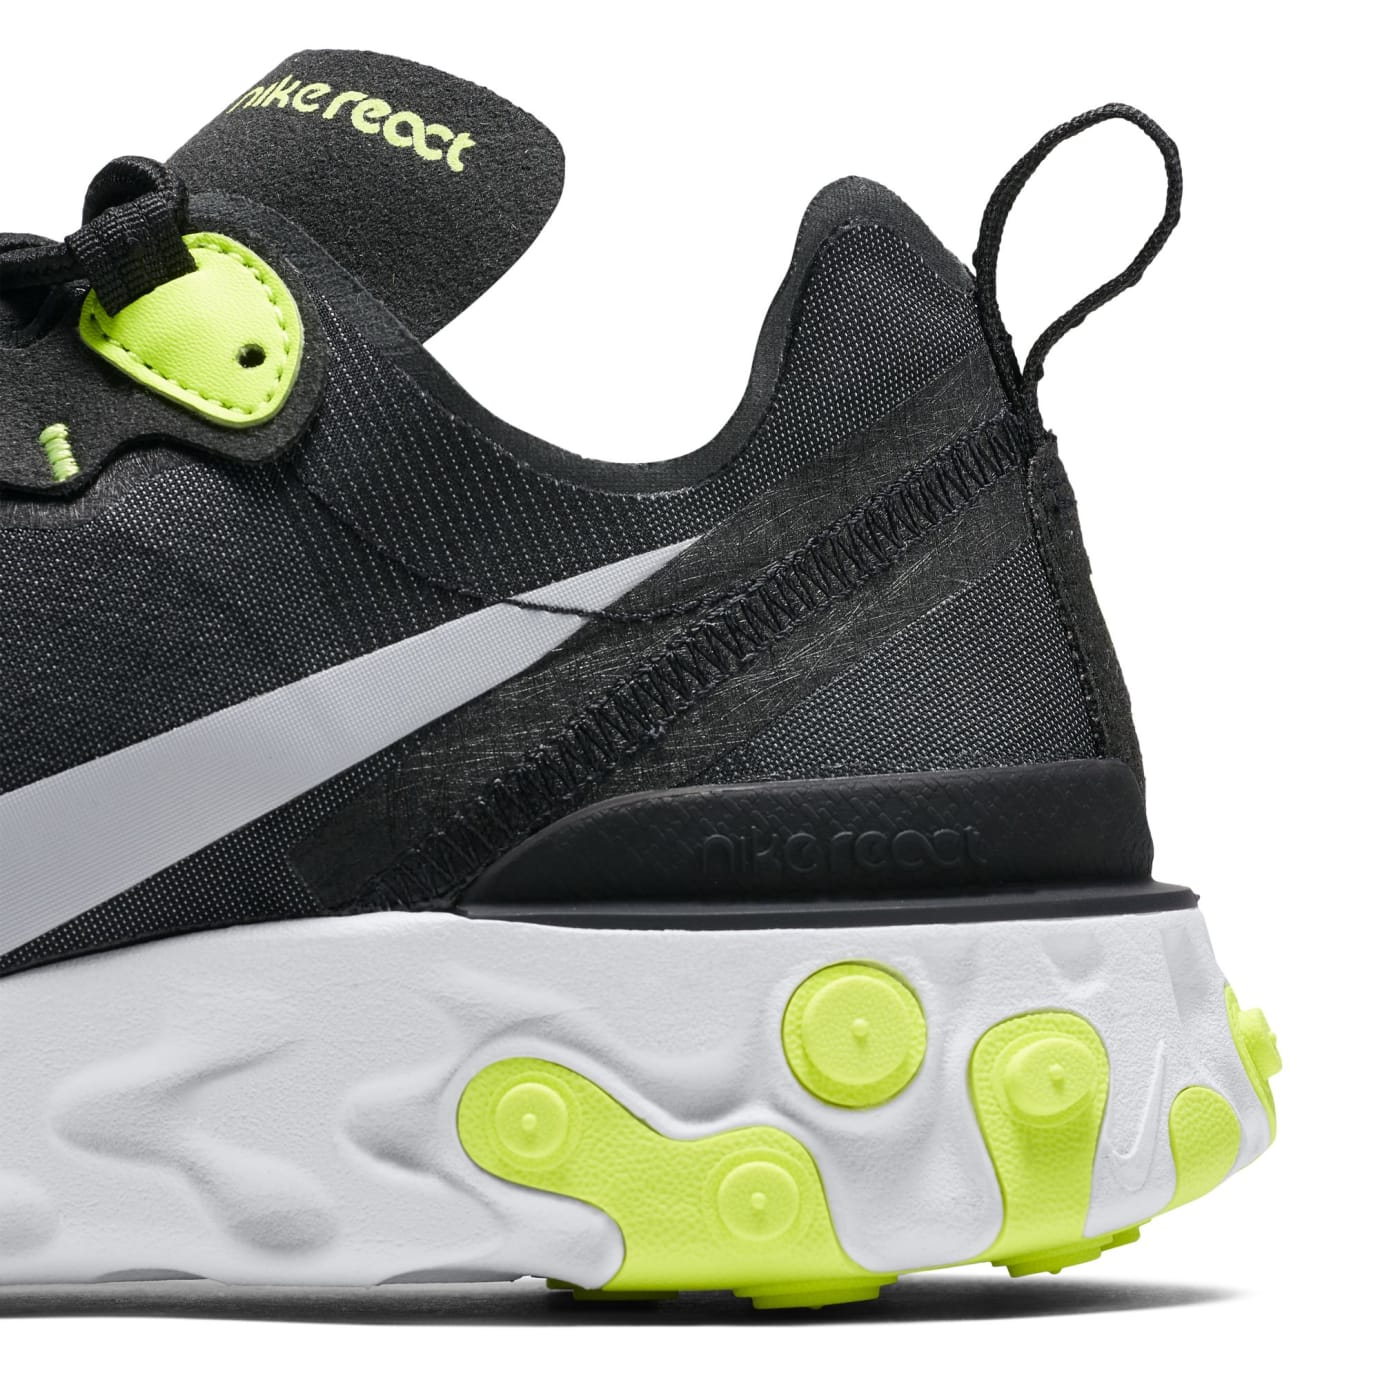 Nike React Element 55 'Black/Cool Grey/White/Volt' (Detail)